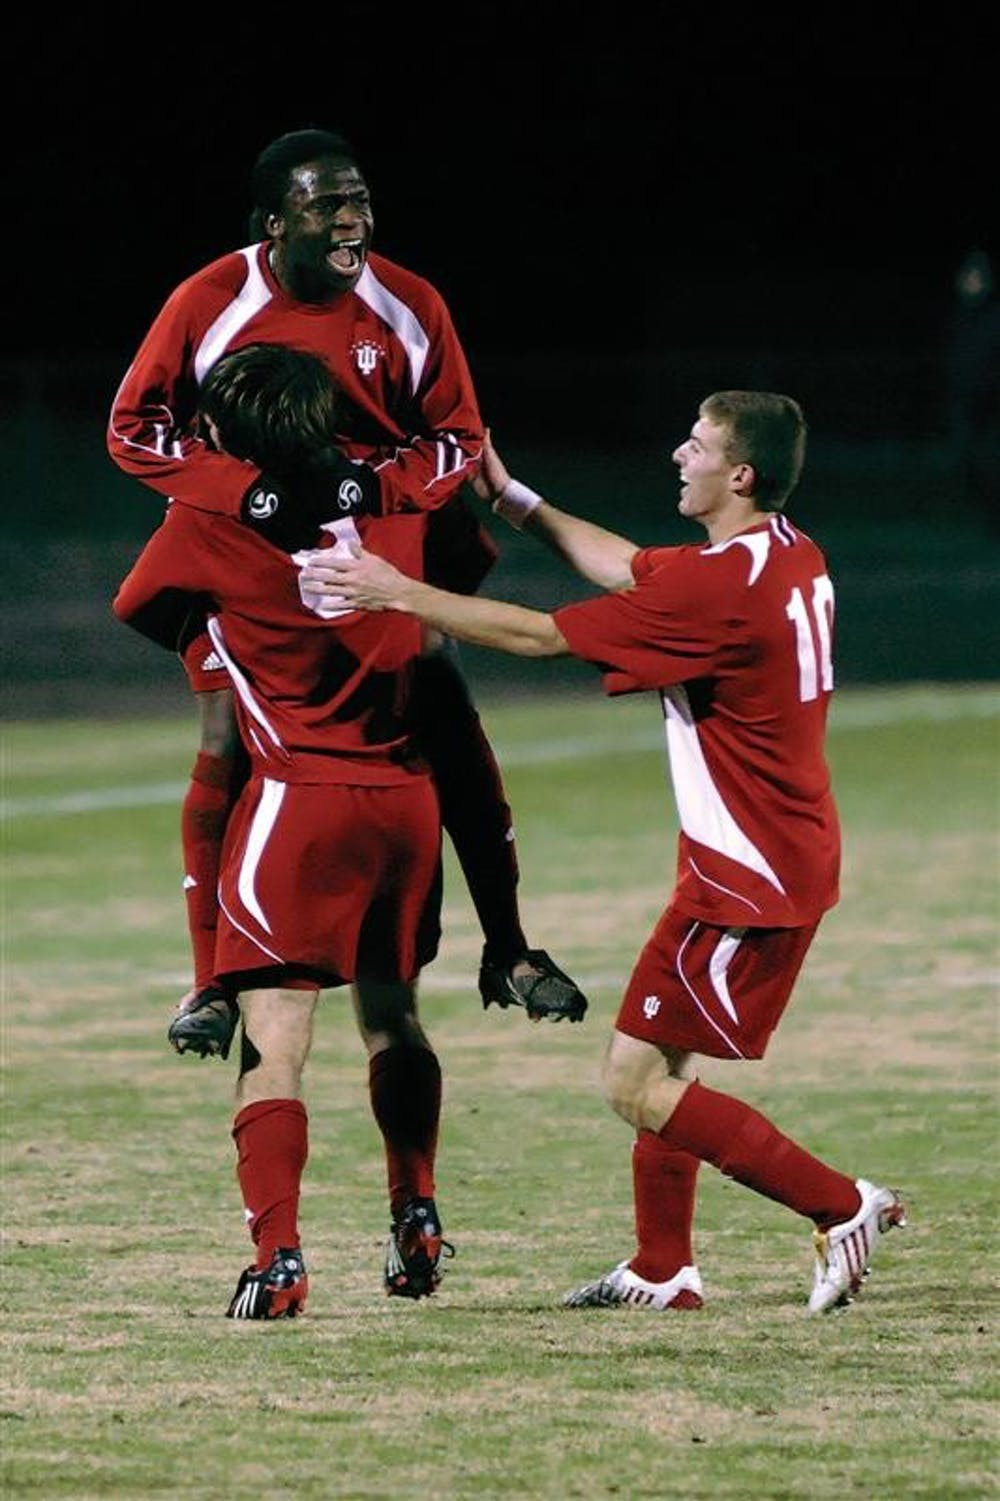 Senior midfielder John Mellencamp (8) celebrates with teammates Ofori Sarkodie and Andy Adlard (10) following Mellencamp's goal in the 18th minute of the Hoosier's 2-0 win over St. Louis on Tuesday night at Bill Armstrong Stadium. IU advances to the third round of the NCAA tournament where the team will play host to Michigan at 7 p.m. Saturday.